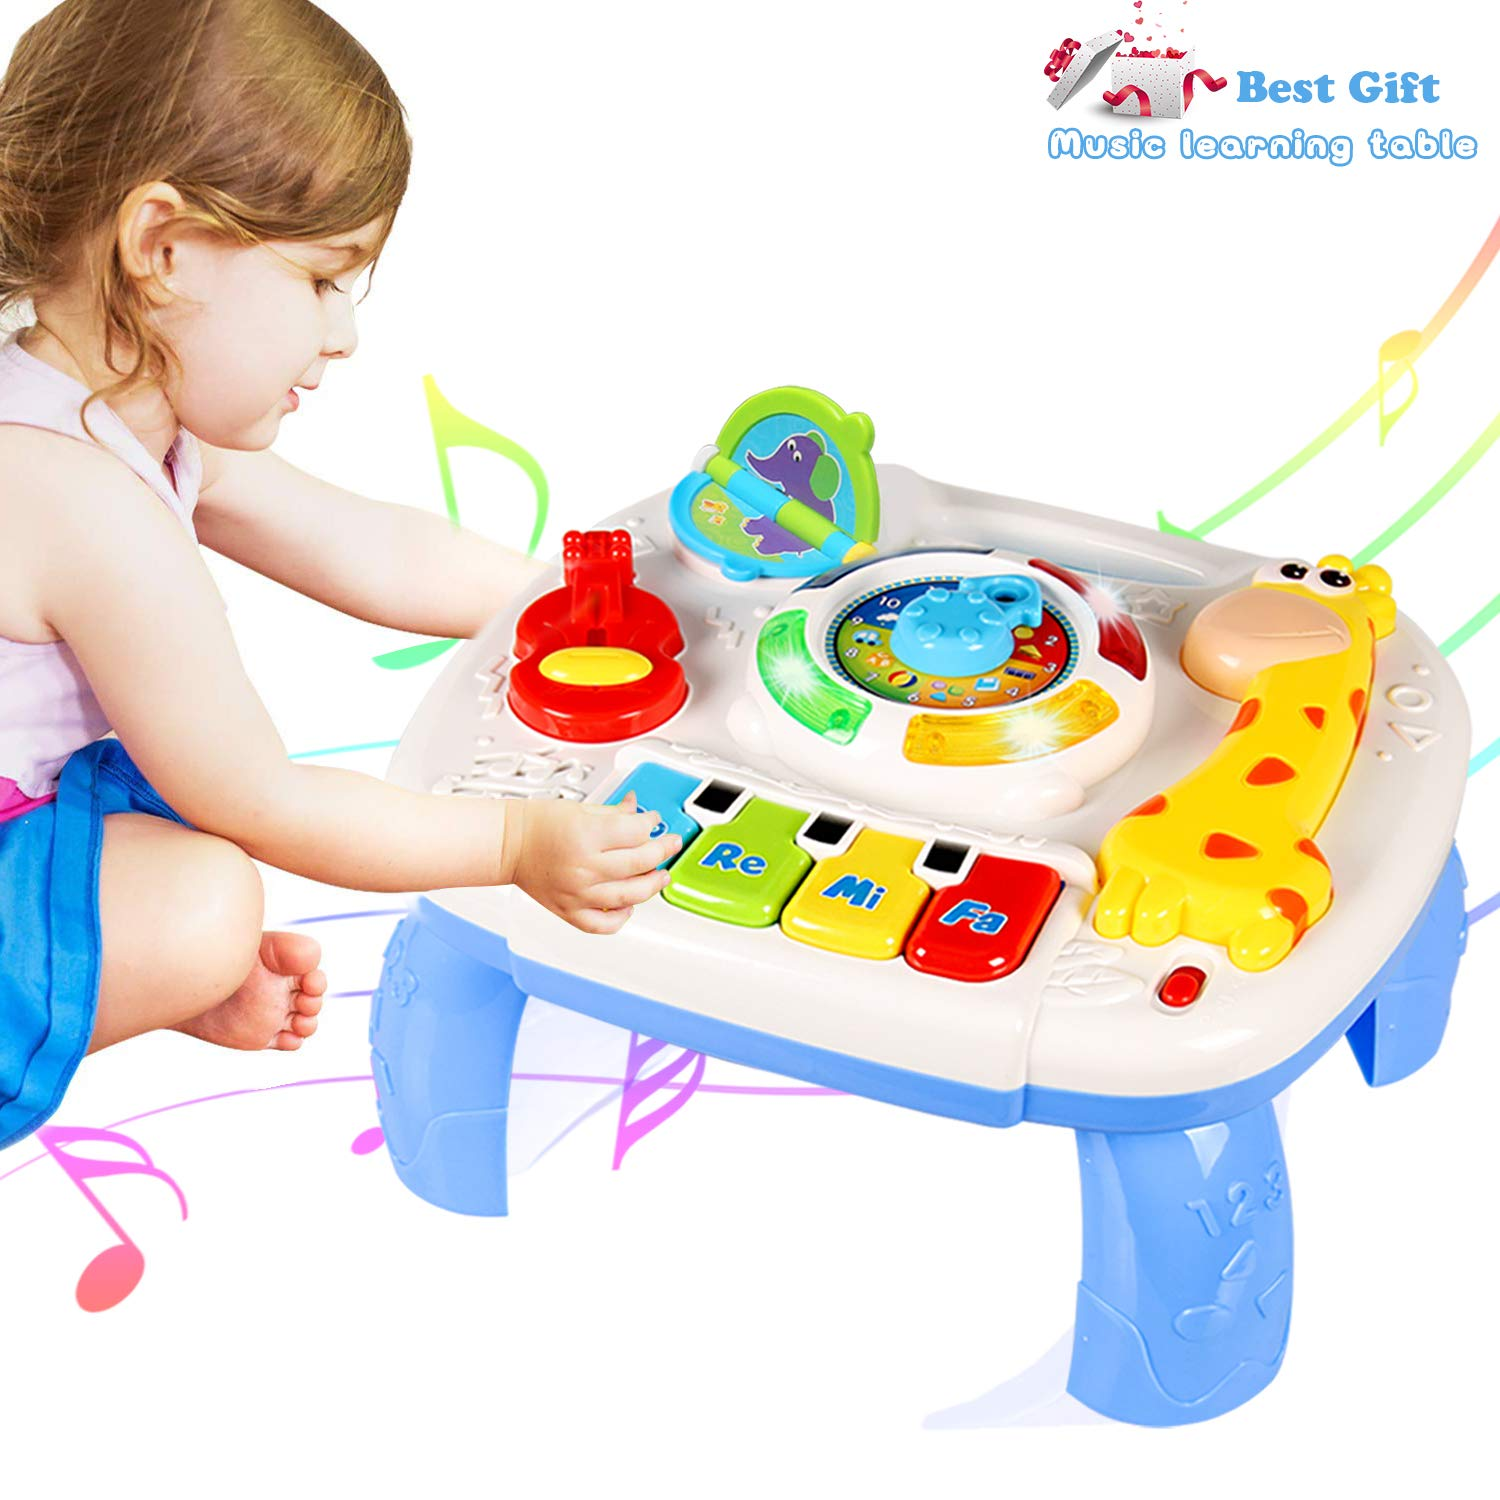 HOMOFY Baby Toys for 6-12 Month Baby Musical Learning Activity Table ,Built-in Animal Sounds, Music & Light Function,Early Development Baby Pull Toy for 1 2 3 Year Old Best Gift for Boys and Girls by HOMOFY (Image #1)